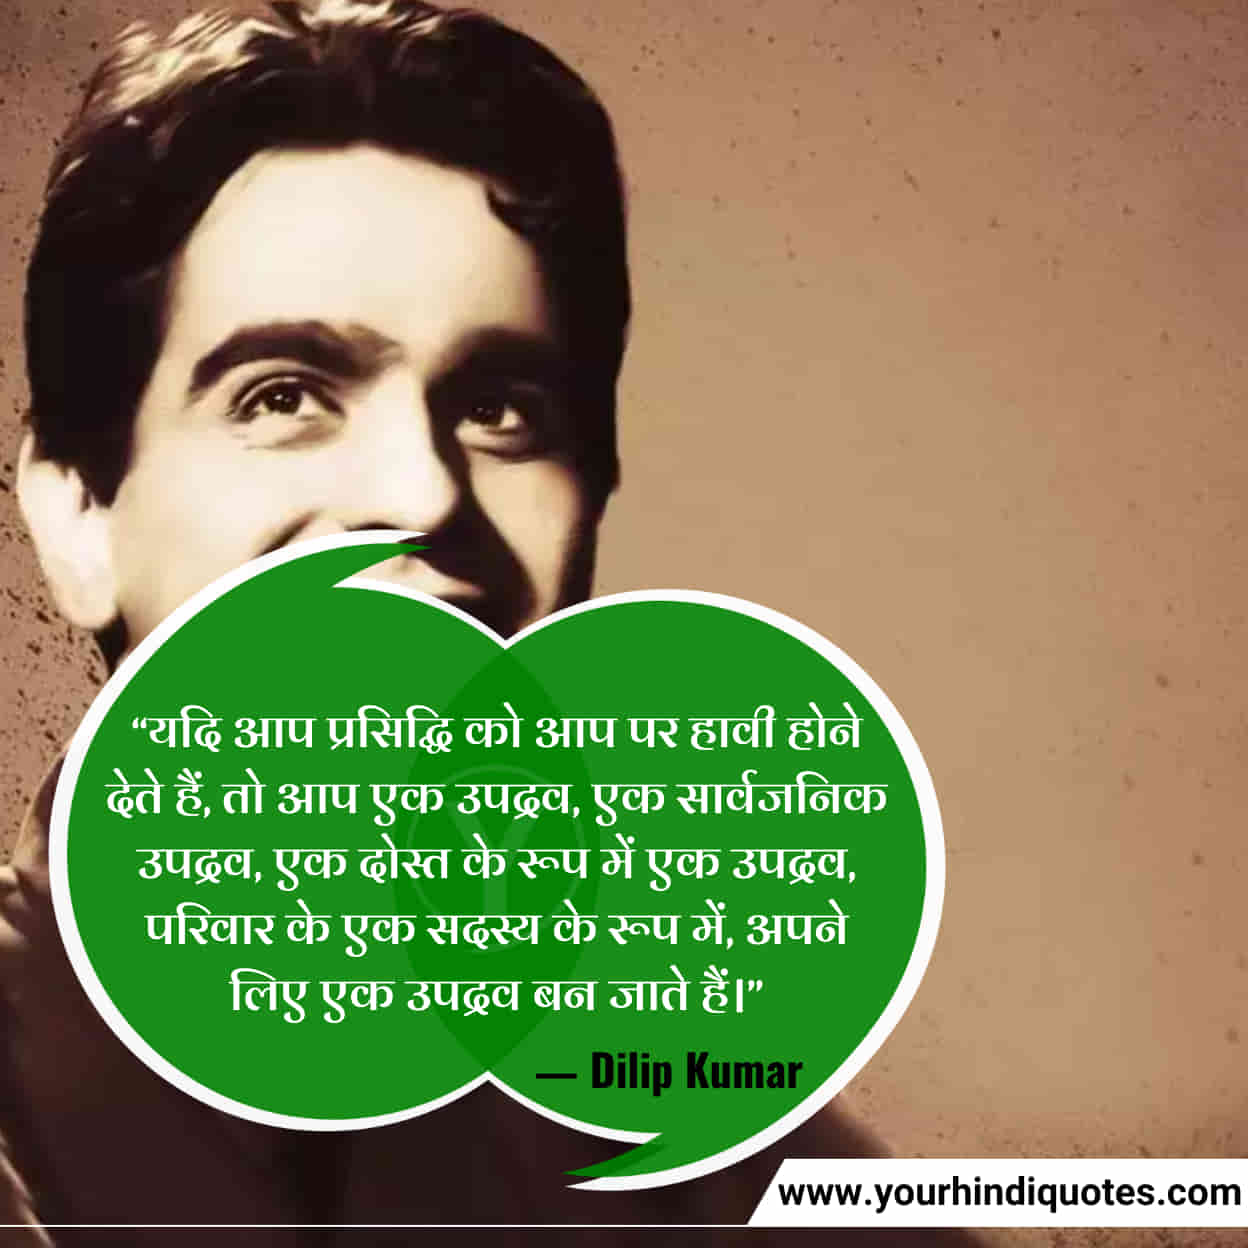 Dilip Kumar Quotes In Hindi